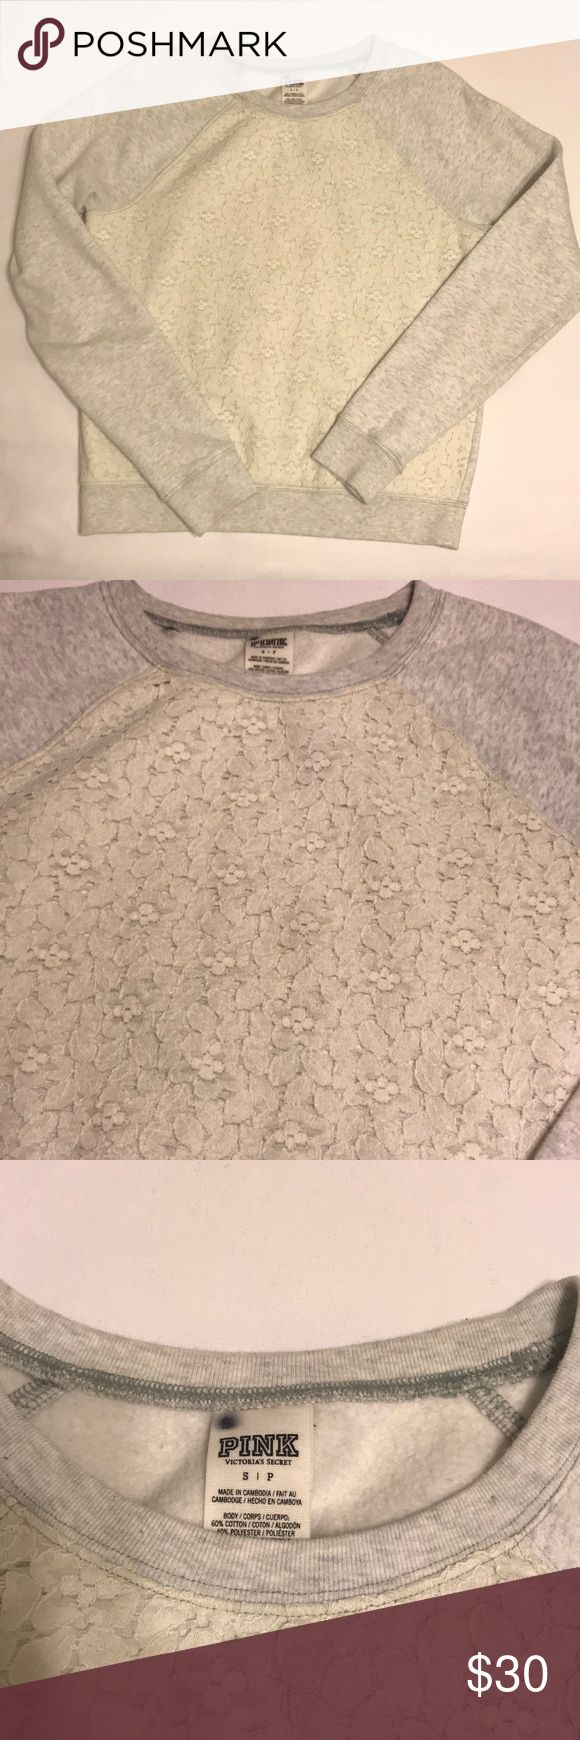 Victoria's Secret Crew Sweatshirt S Heathered Gray sleeves and cream lace bodice. Purchased at the outlet in 2015. Normal Wear. Still in good condition. Size Small top to bottom 24 inches from shoulder to wrist 27inches. PINK Victoria's Secret Tops Sweatshirts & Hoodies